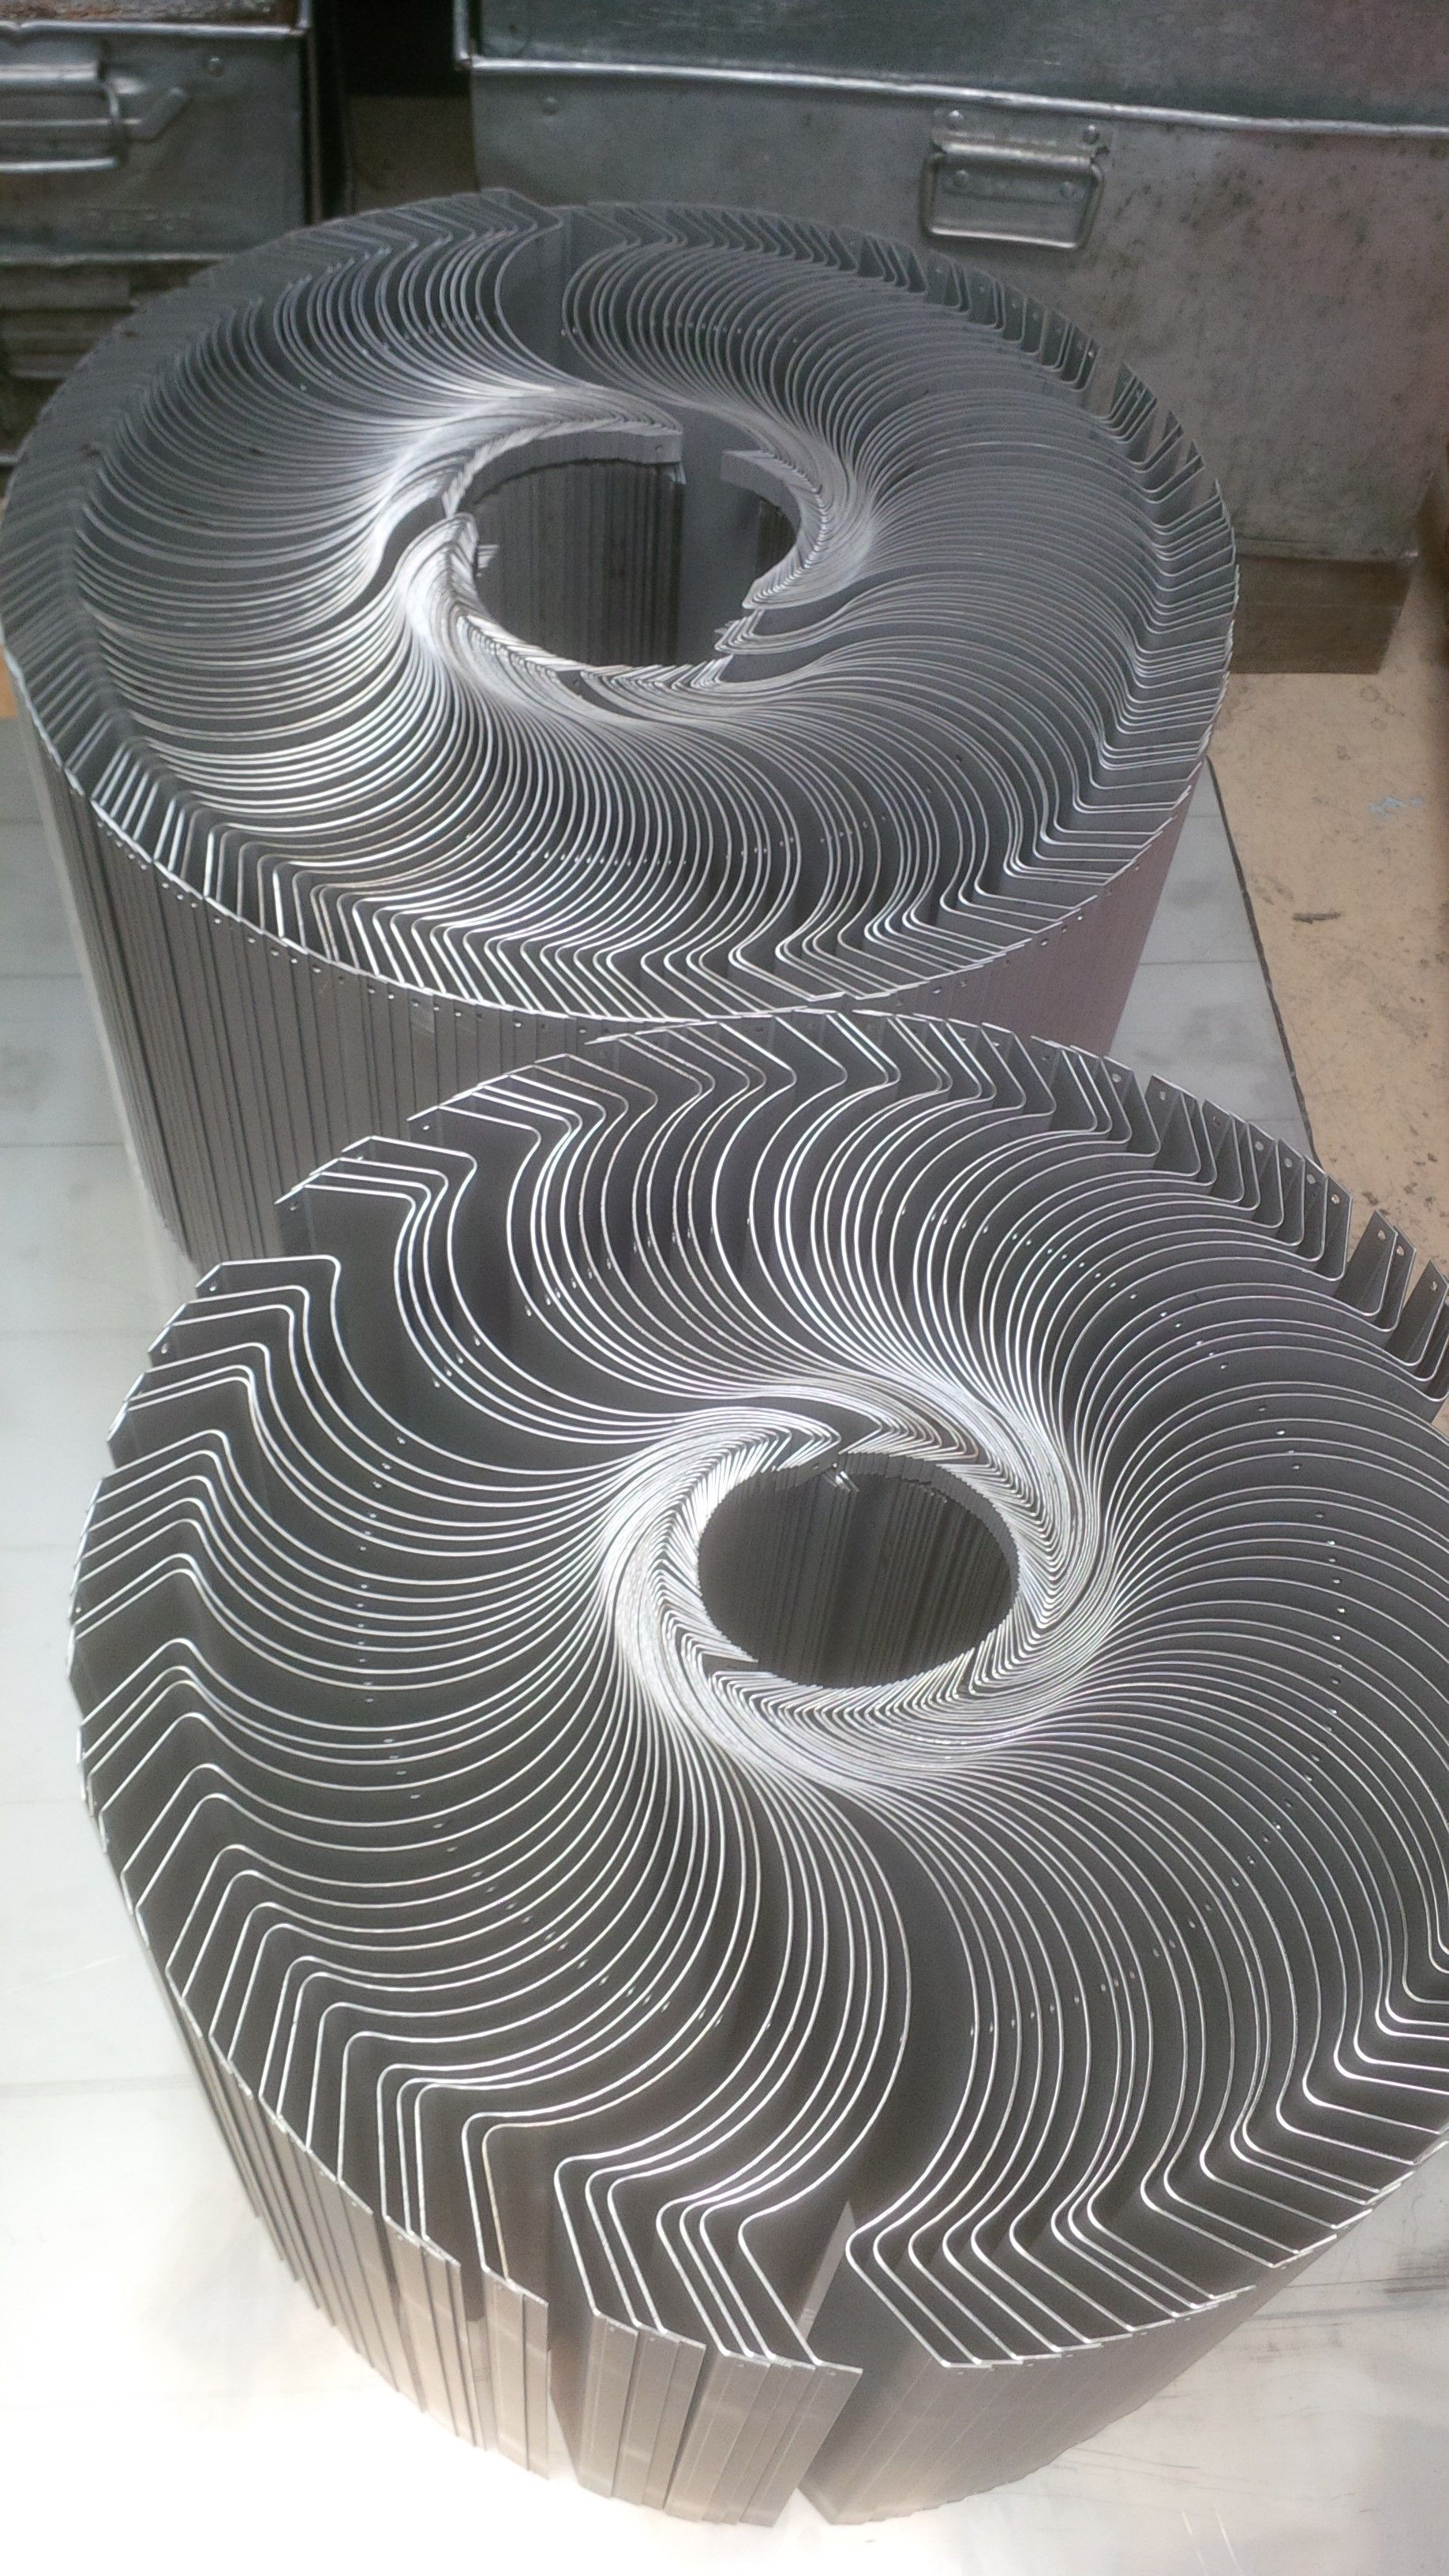 So What Is Cnc Bending And How Can It Be Used To Produce Sheet Metal Components Sheet Metal Work Cnc Metal Working